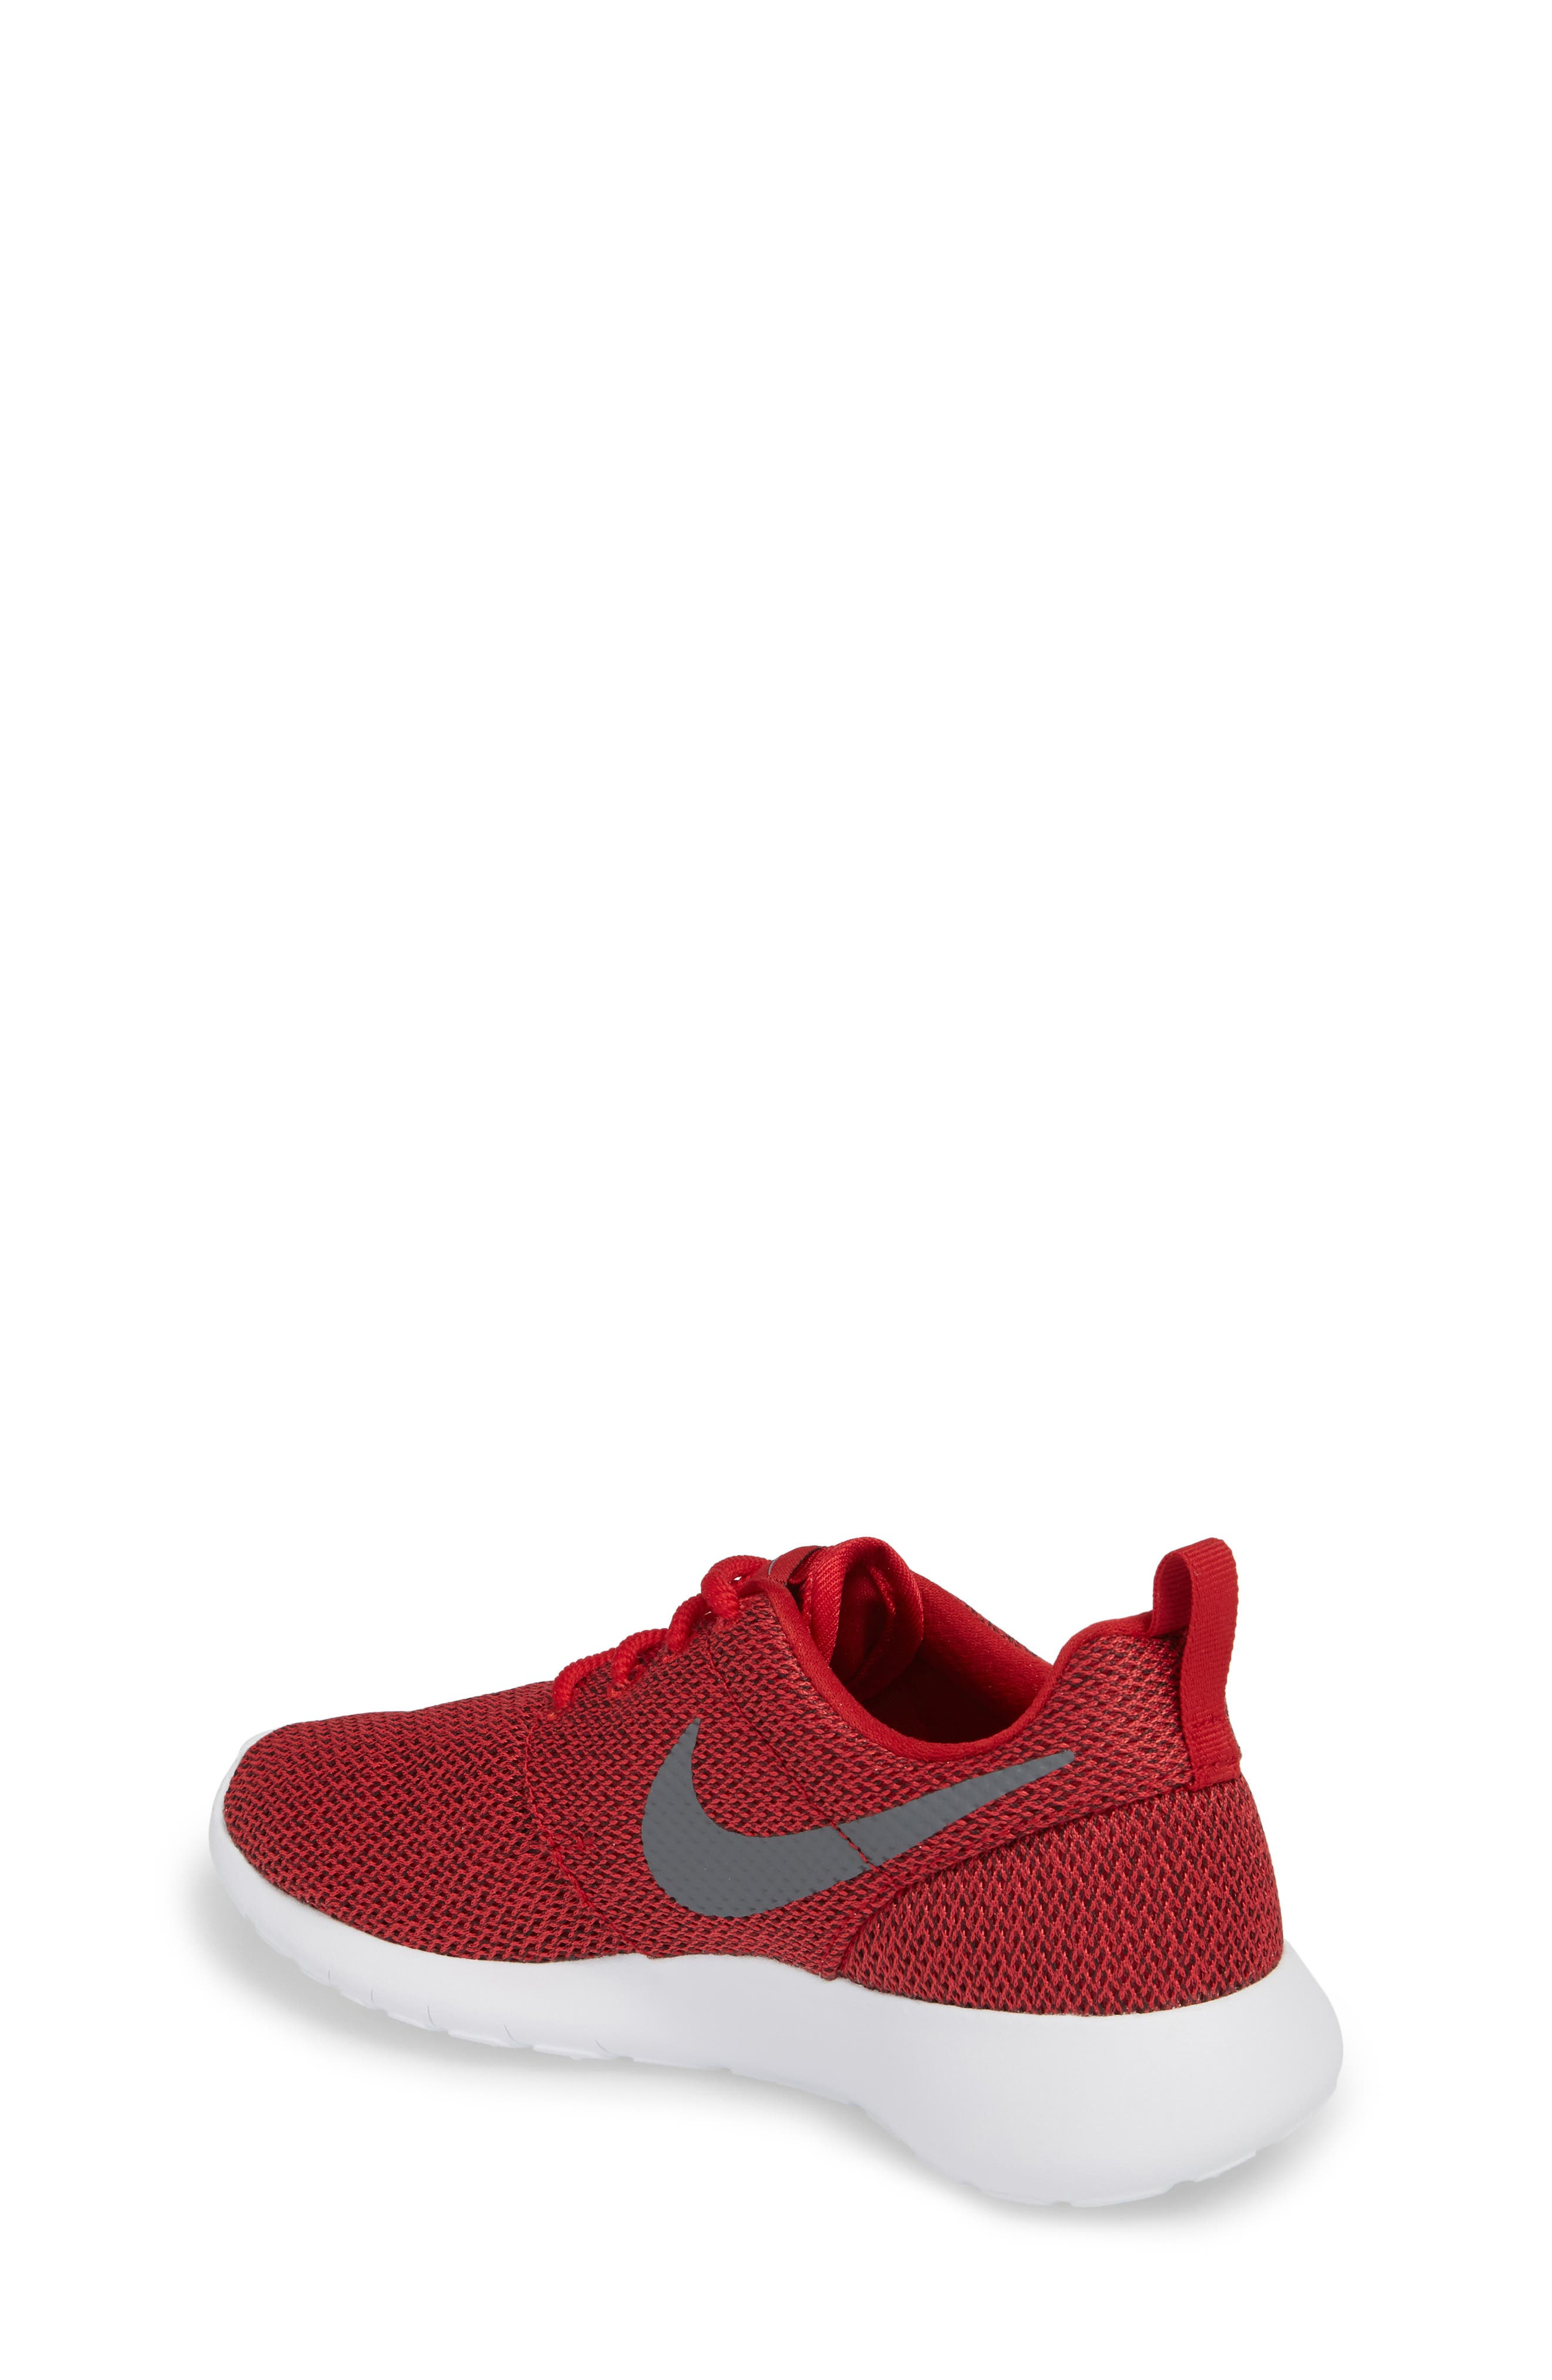 'Roshe Run' Sneaker,                             Alternate thumbnail 62, color,